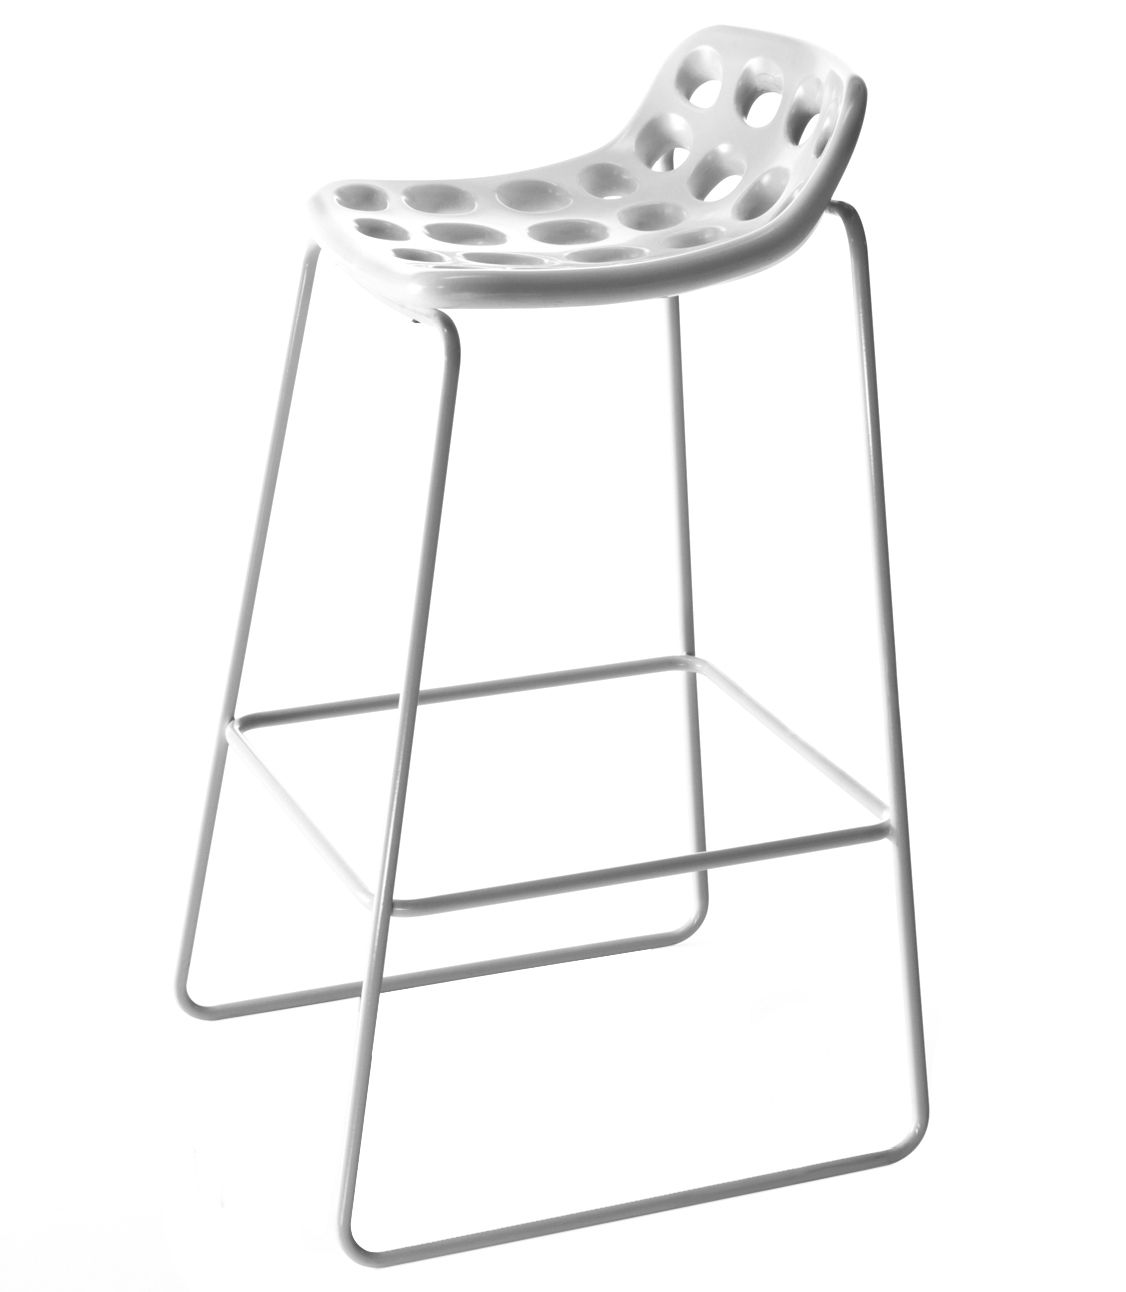 tabouret de bar chips h 85 cm assise plastique blanc myyour. Black Bedroom Furniture Sets. Home Design Ideas